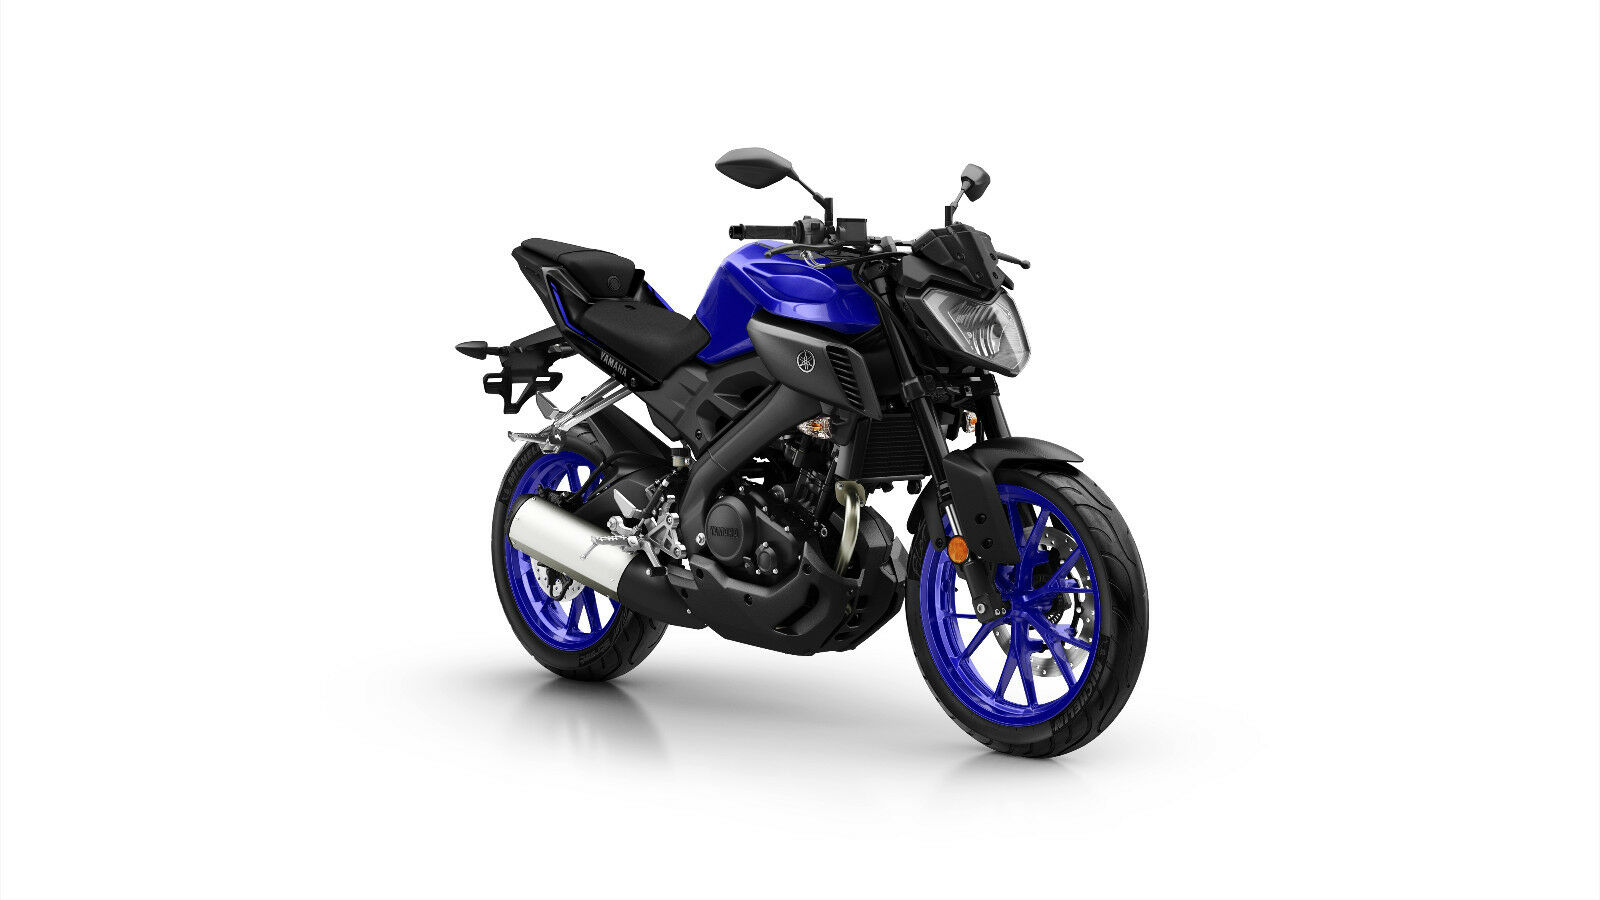 MT-125 ABS Modell 2019 SOFORT LIEFERBAR!